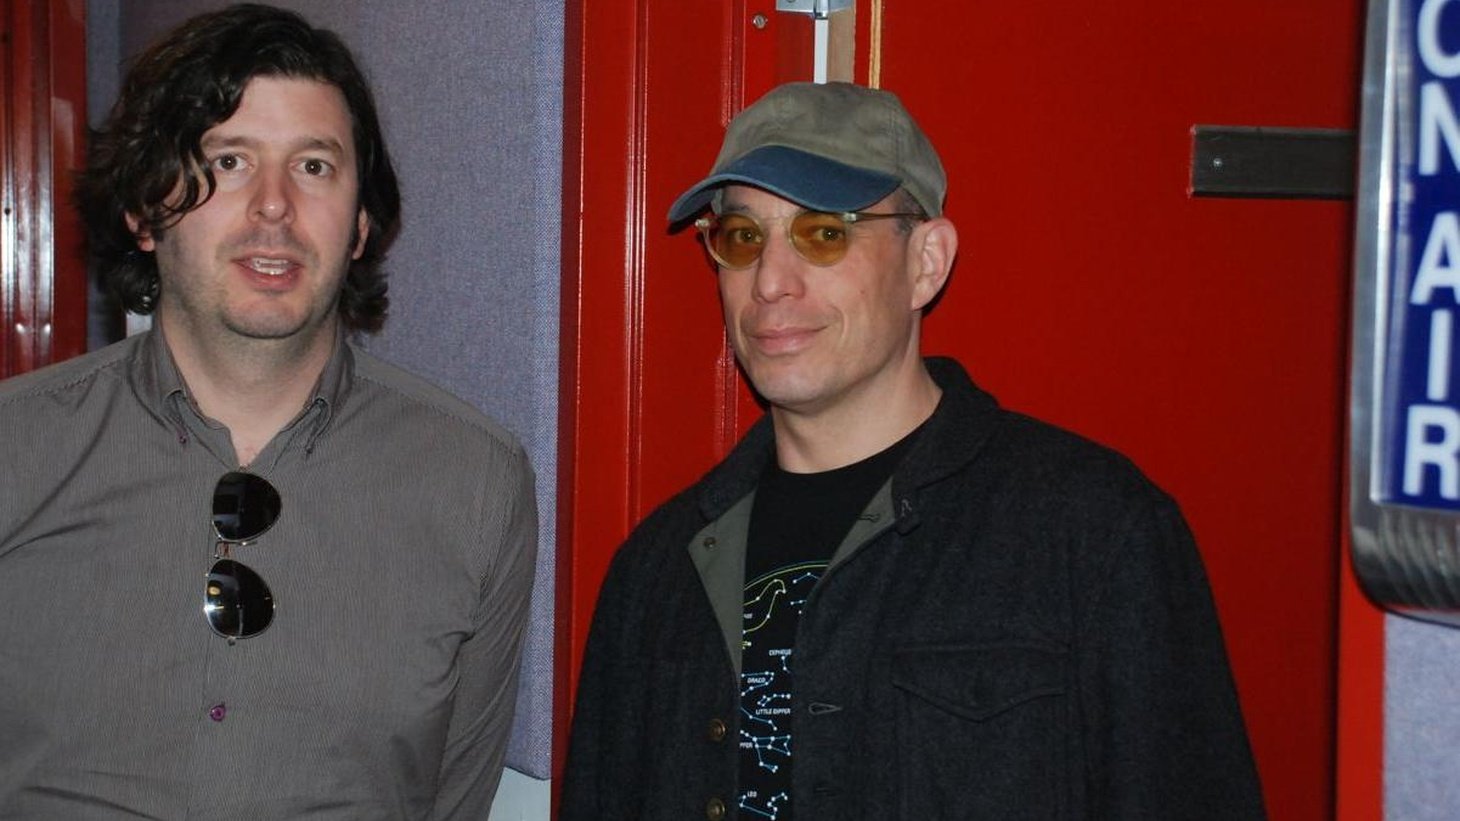 """New Yorker cartoonist Bruce Eric Kaplan, also know by his initials BEK, explores his childhood psyche, his aspirations and the creative process through five songs from the '70s in his Guest DJ set. His dark humor and unique insight into relationships served him well as a writer for """"Seinfeld"""" and """"Six Feet Under"""" and he shares it all here. He recently put together his first children's picture book, """"Monsters Eat Whiny Children,"""" which will be in stores August 31."""